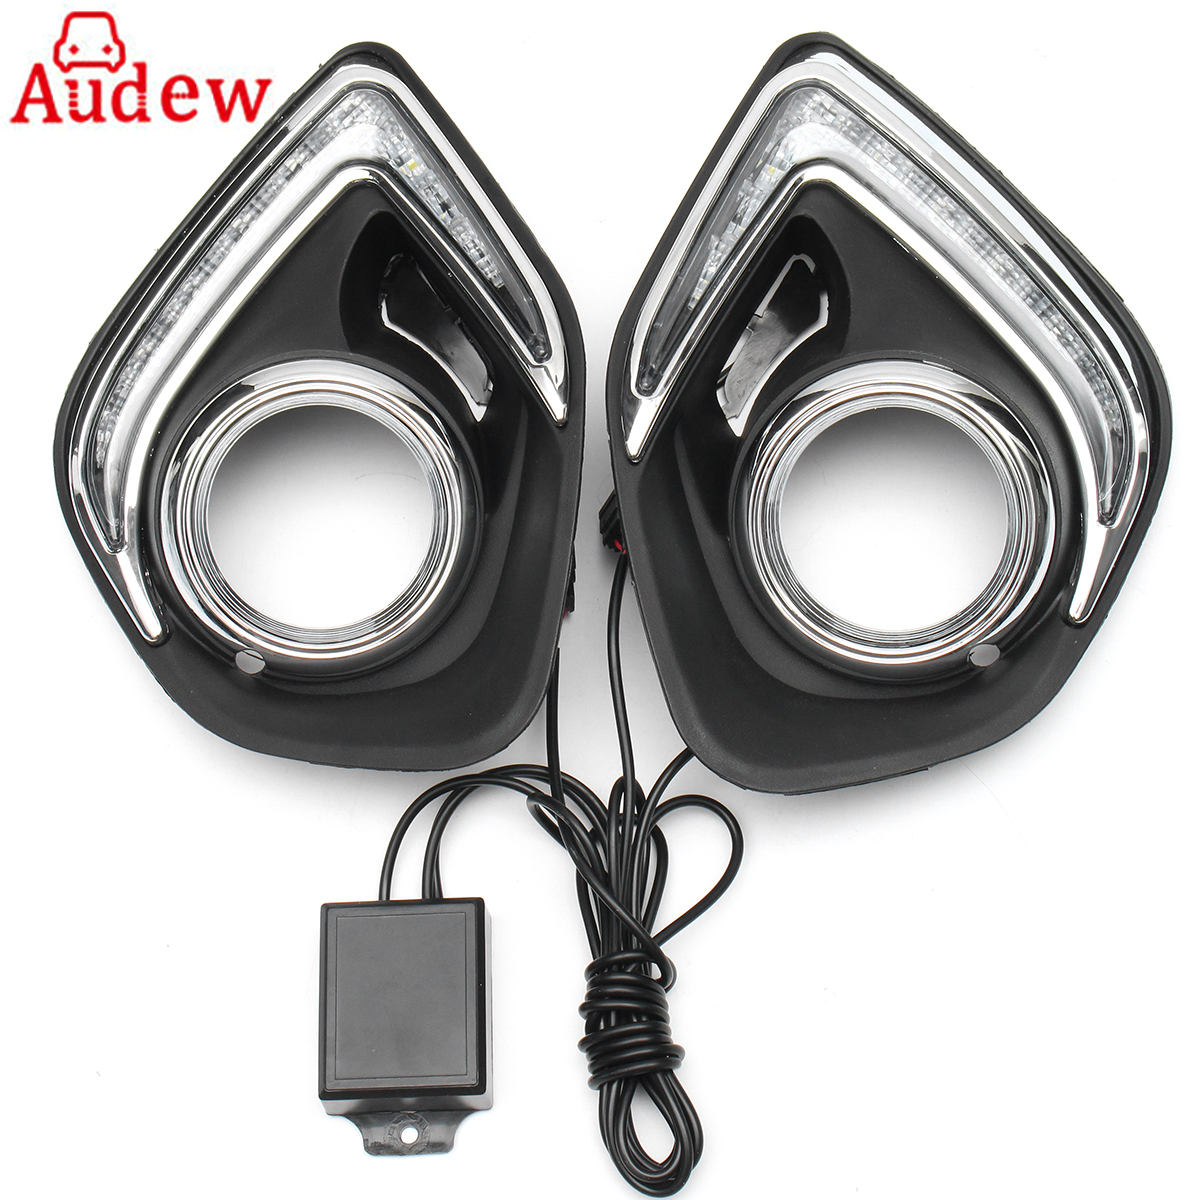 For Mitsubishi ASX 2013-2016 2pcs Car LED Daytime Running Lamp Day Fog Lights DRL high quality fast and free shipping car specific for mitsubishi asx drl led daytime running lights 2013 2014